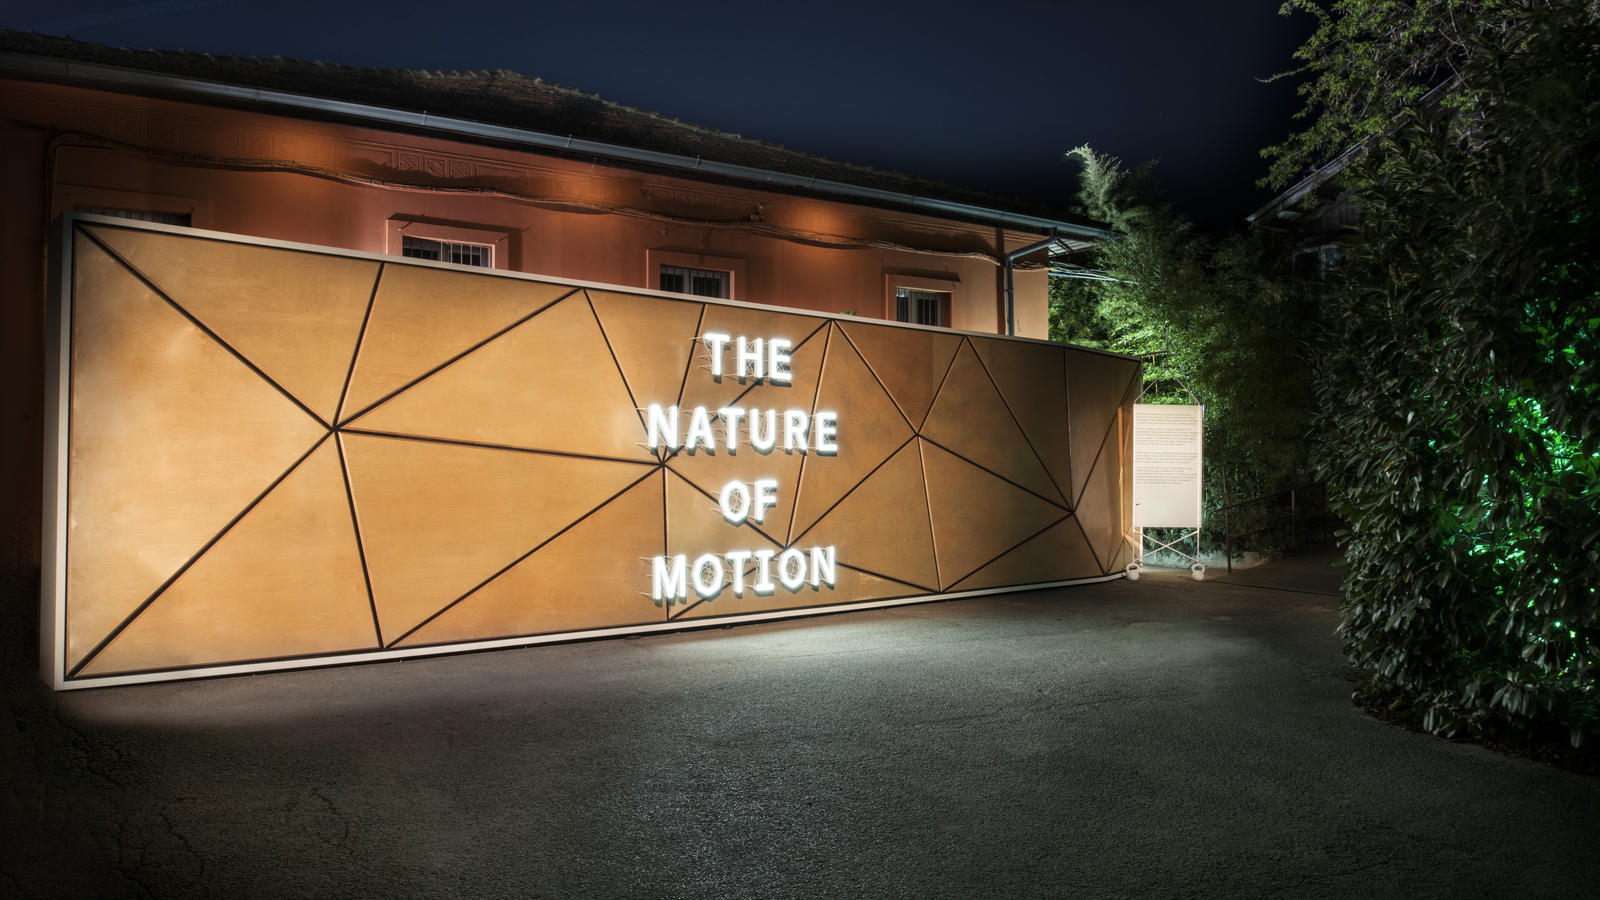 02-THE_NATURE_OF_MOTION